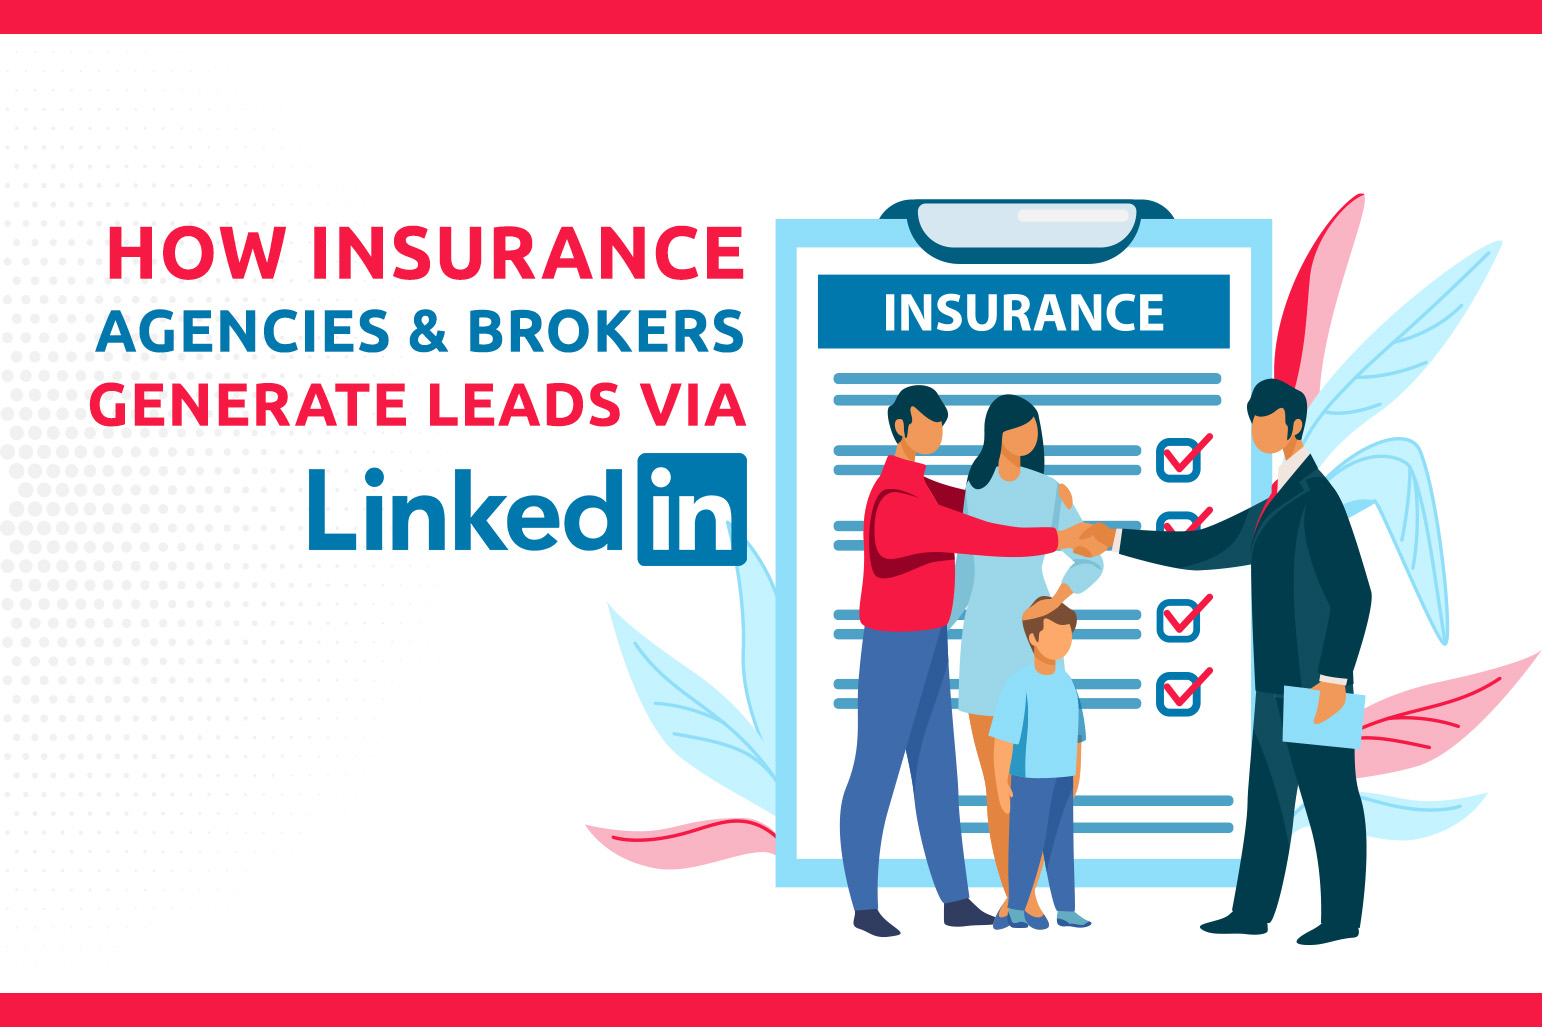 How Insurance Agencies & Brokers Generate Leads Via LinkedIn